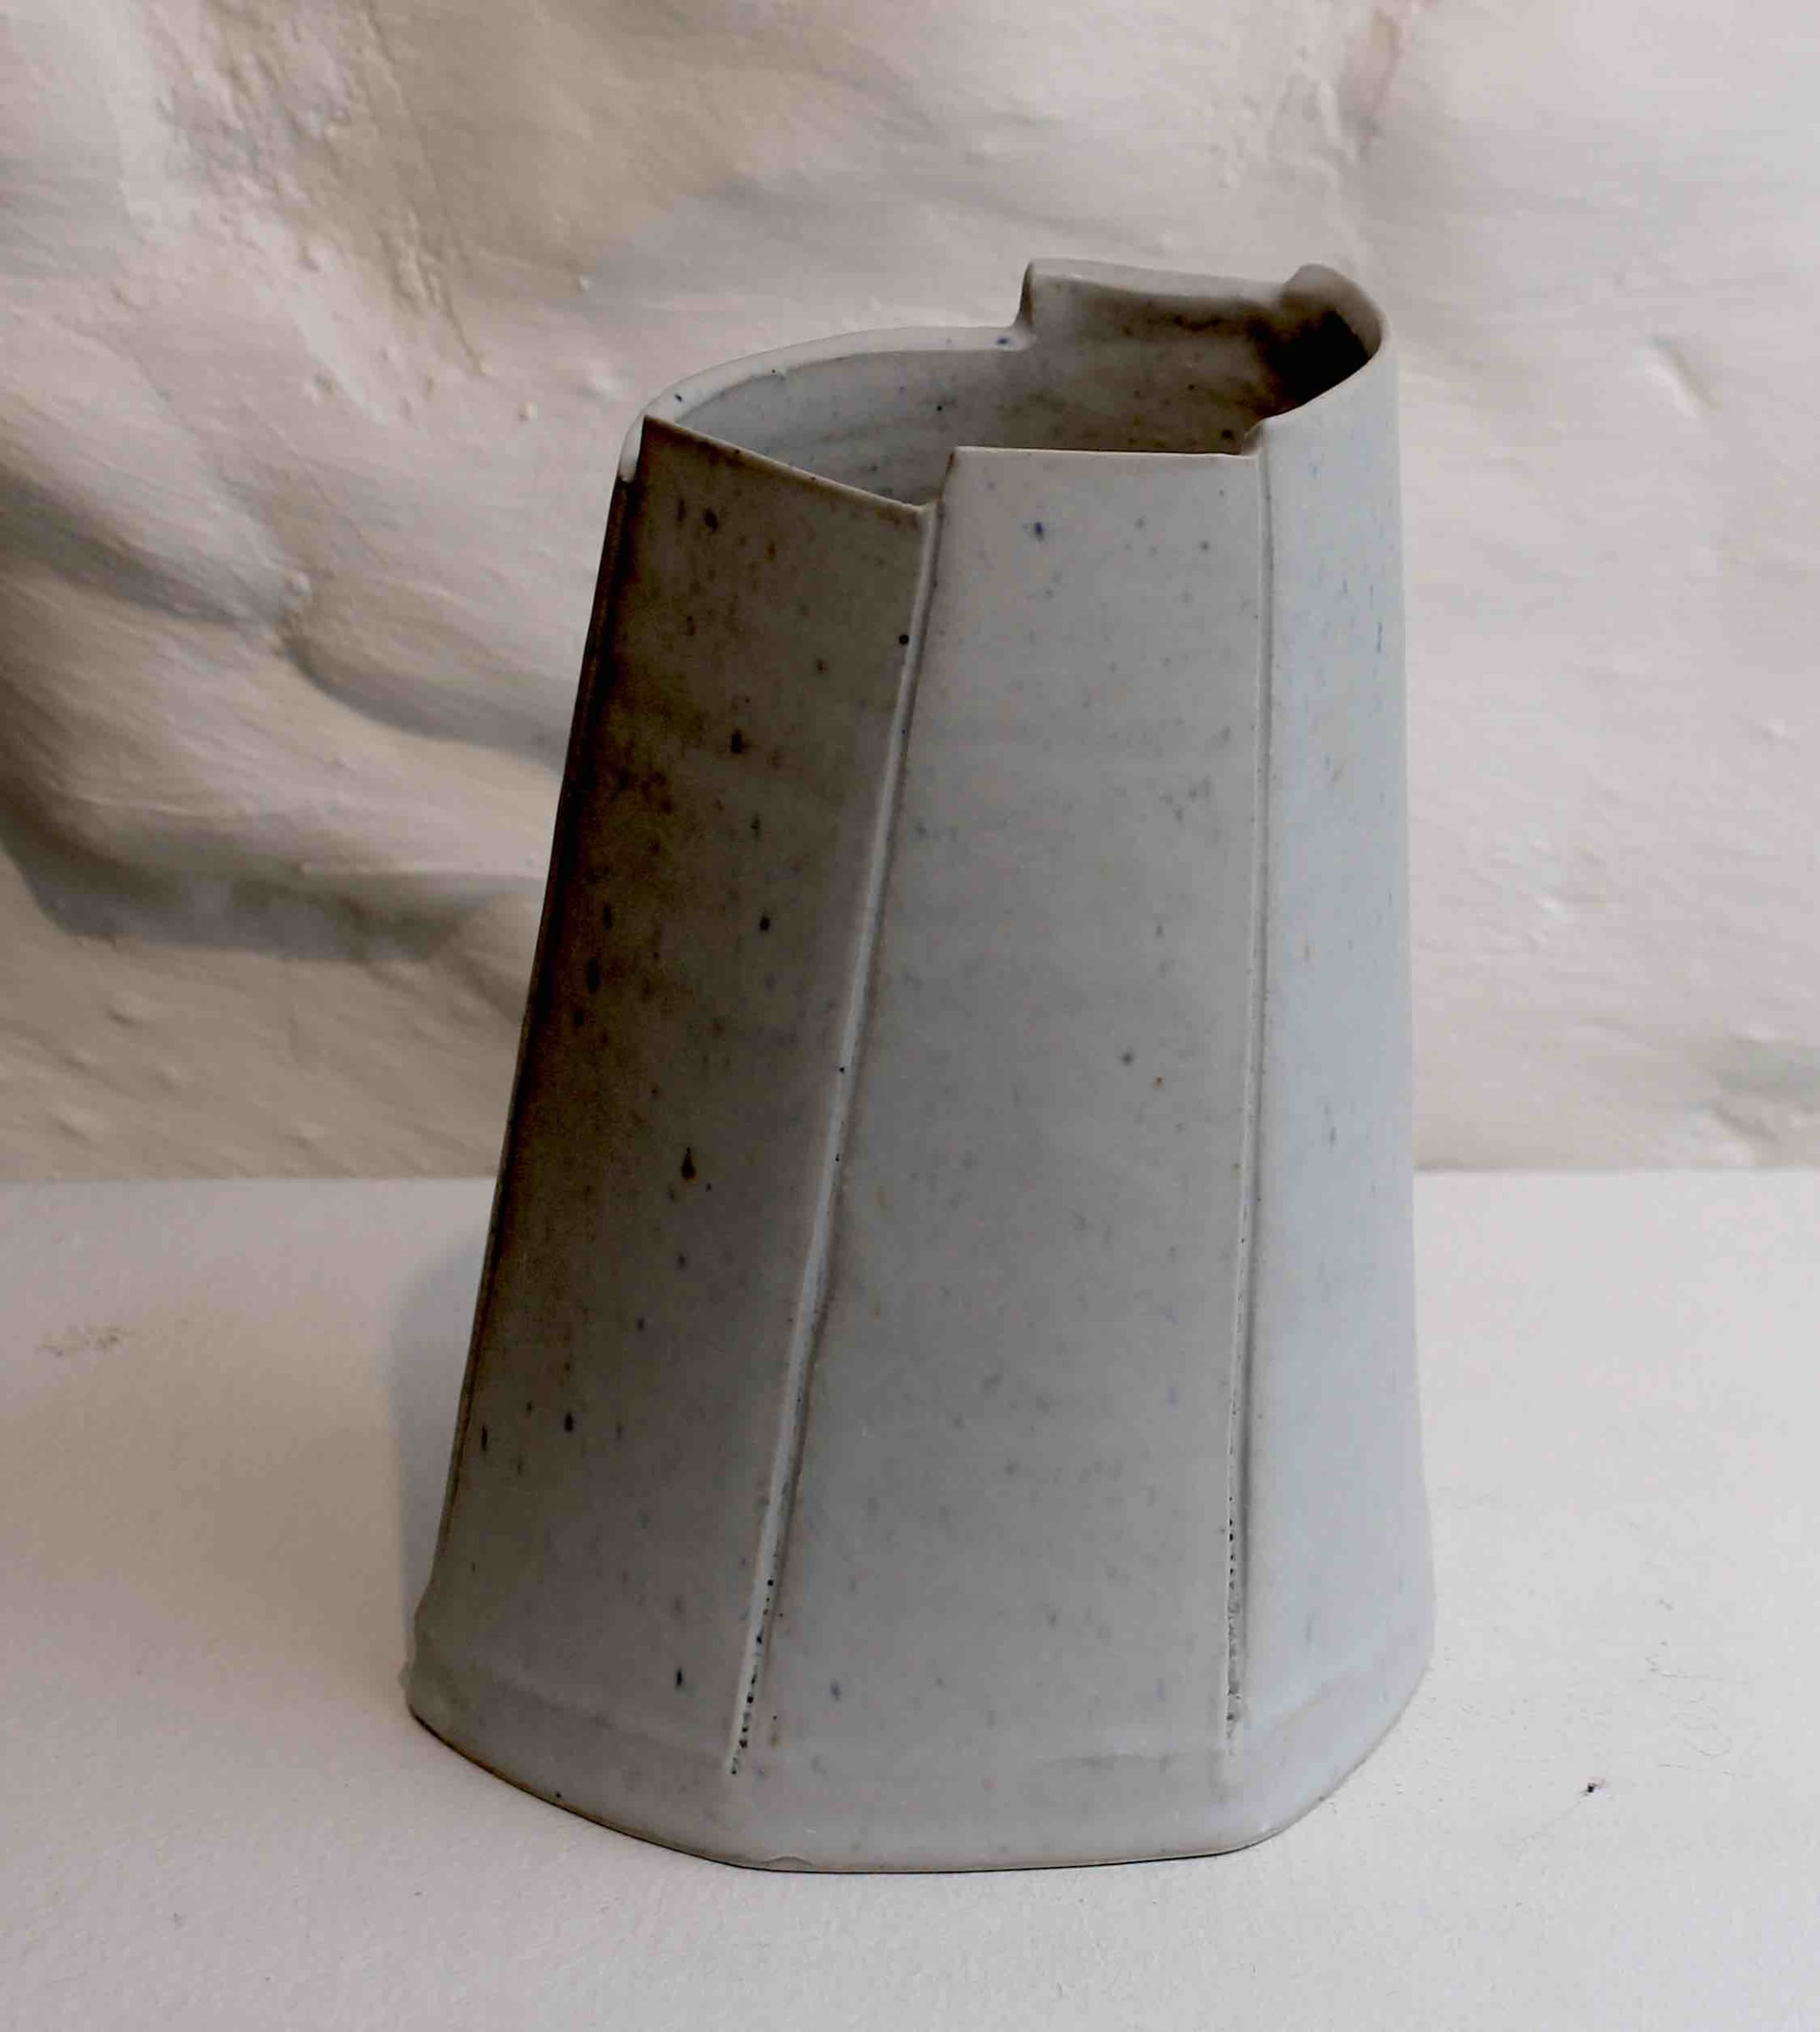 """<span class=""""link fancybox-details-link""""><a href=""""/artists/99-carina-ciscato/works/5762-carina-ciscato-medium-coloured-vase-2018/"""">View Detail Page</a></span><div class=""""artist""""><strong>Carina Ciscato</strong></div> b. 1970 <div class=""""title""""><em>Medium Coloured Vase</em>, 2018</div> <div class=""""signed_and_dated"""">porcelain</div> <div class=""""medium"""">porcelain</div> <div class=""""dimensions"""">15 x 9 cm<br /> 5 7/8 x 3 1/2 inches</div><div class=""""price"""">£500.00</div><div class=""""copyright_line"""">OwnArt: £50  x 10 Months, 0% APR</div>"""